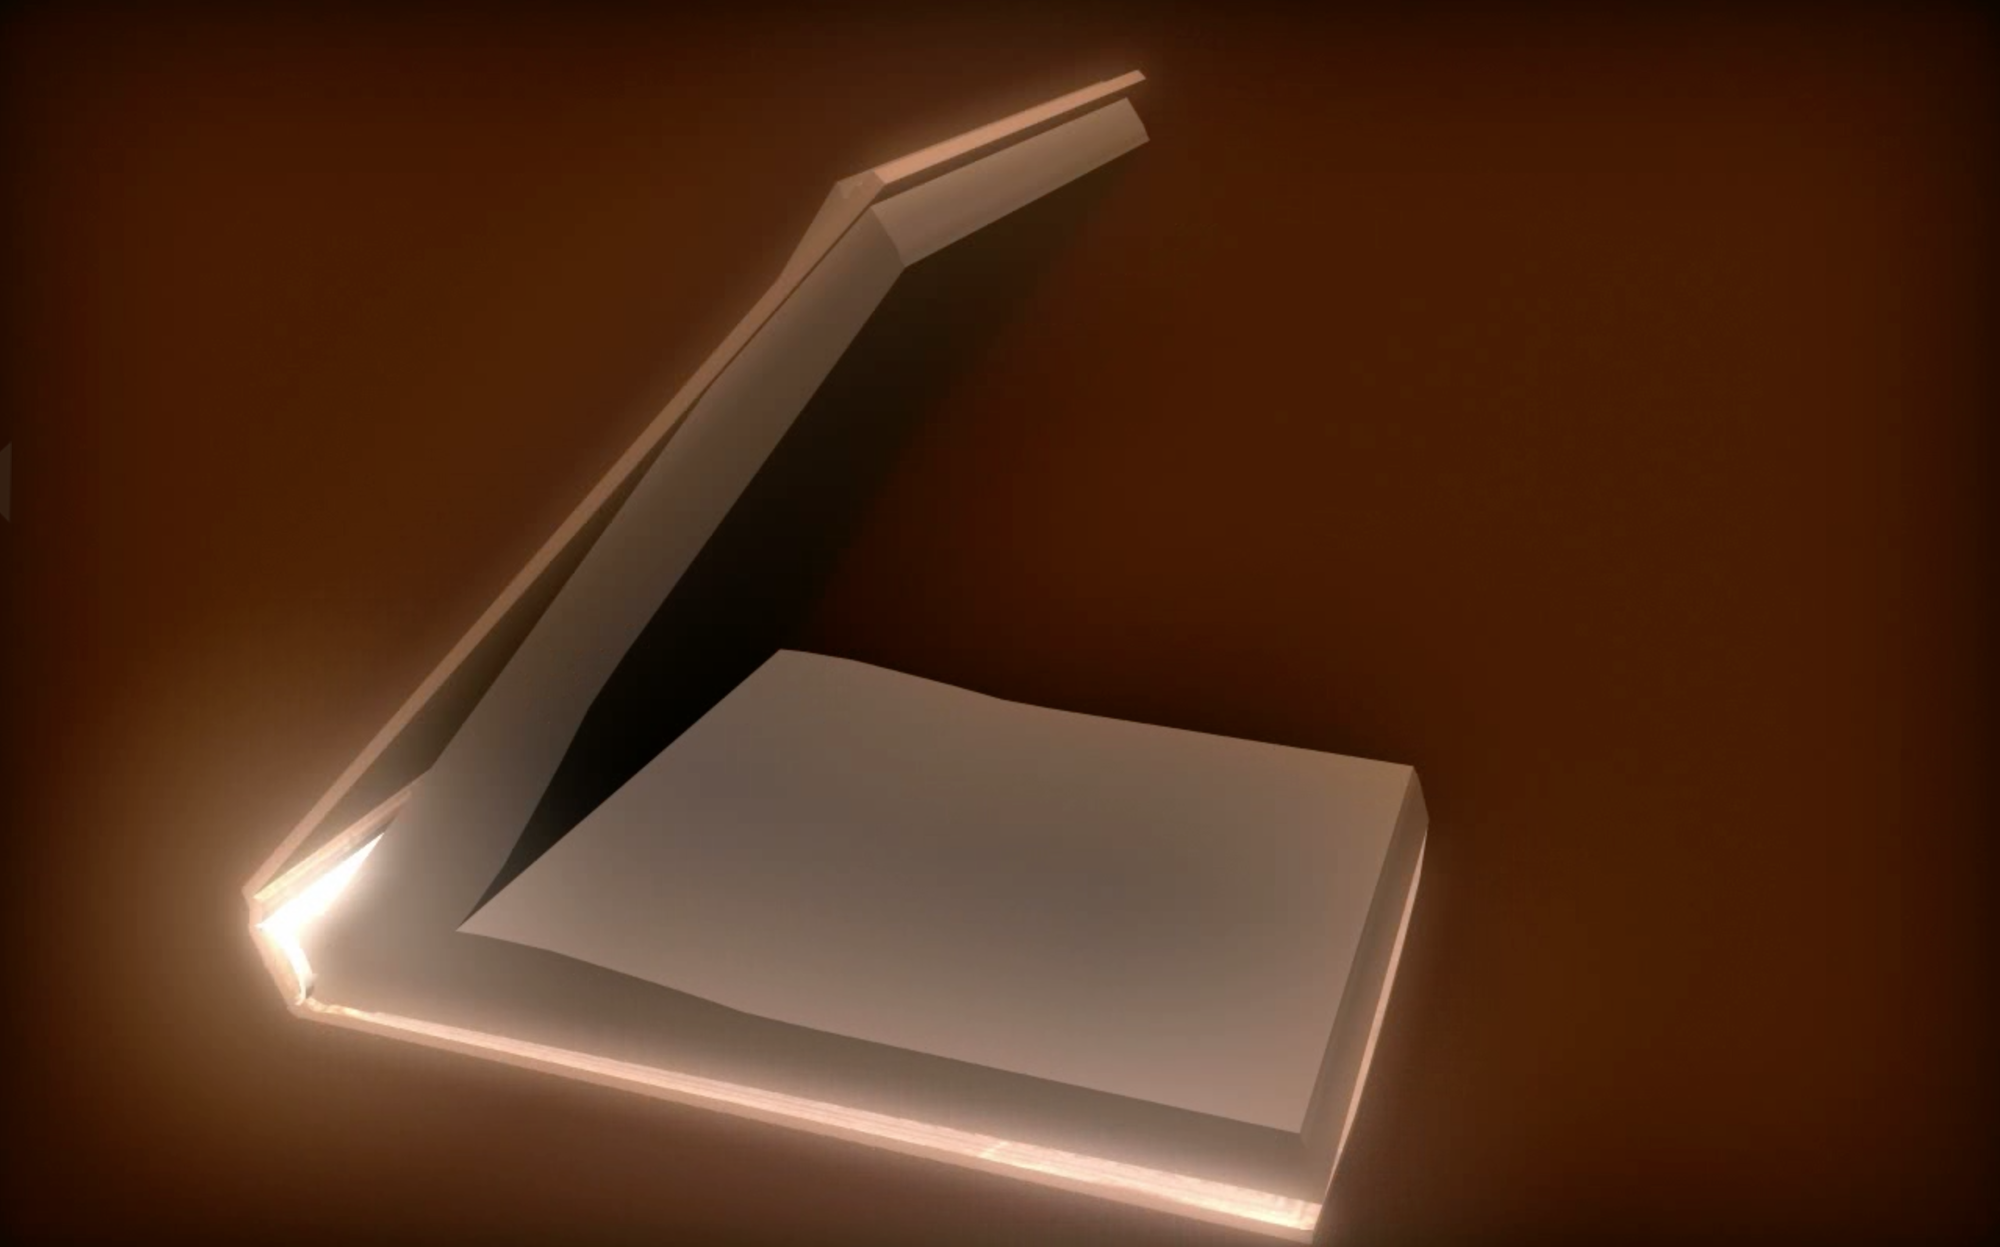 1. The Book Opens